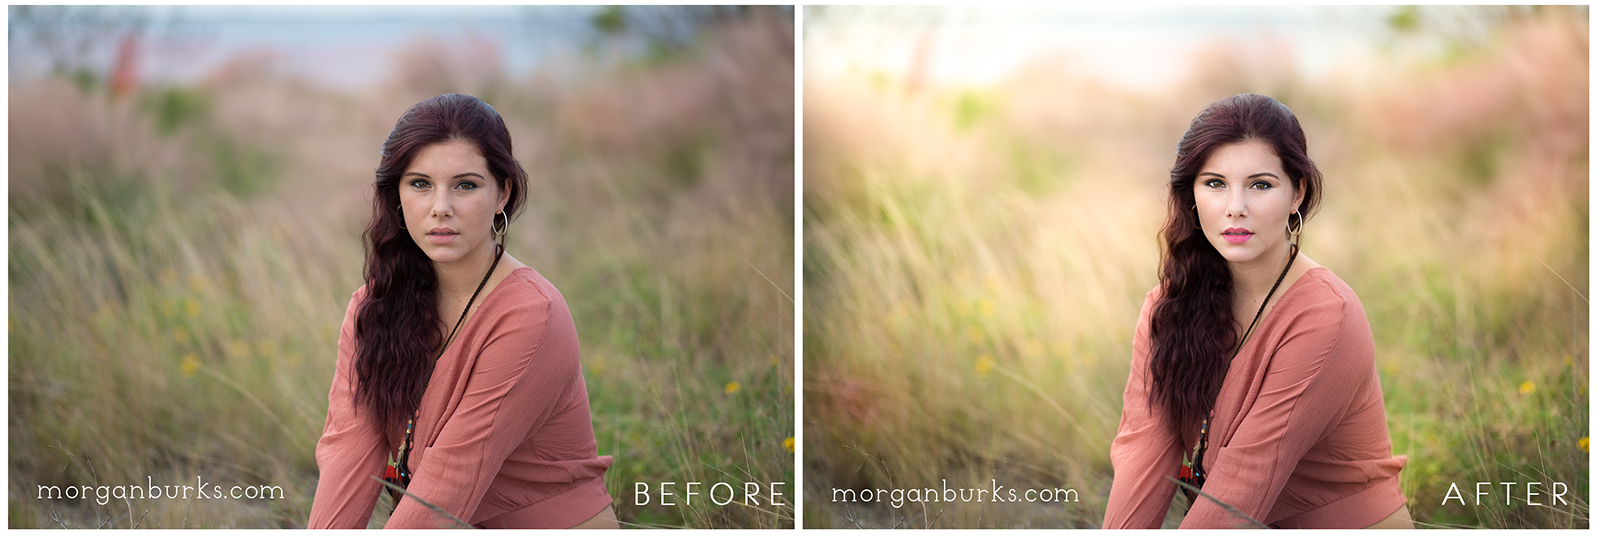 If you're brand new to Lightroom Presets, start here! This post will explain what they are, how to use them, and even give you a free sample to try!